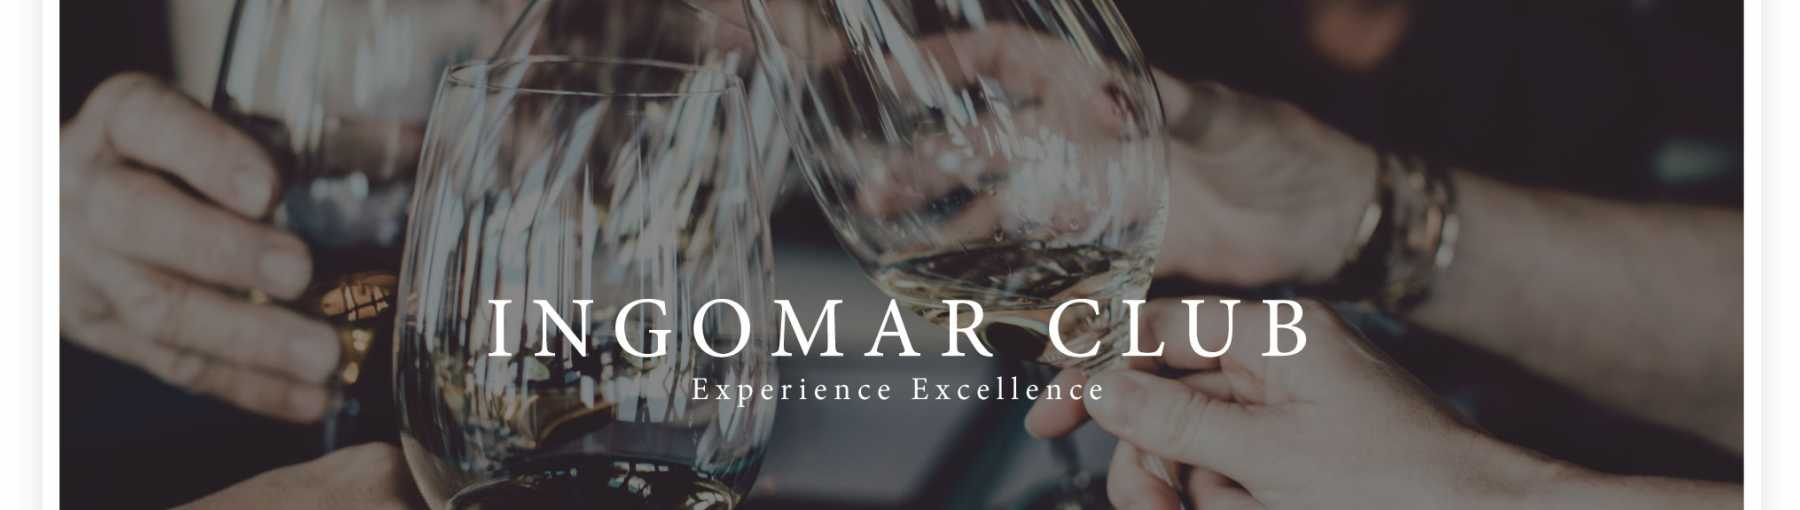 Image showcasing core design Theme - Experience Excellence